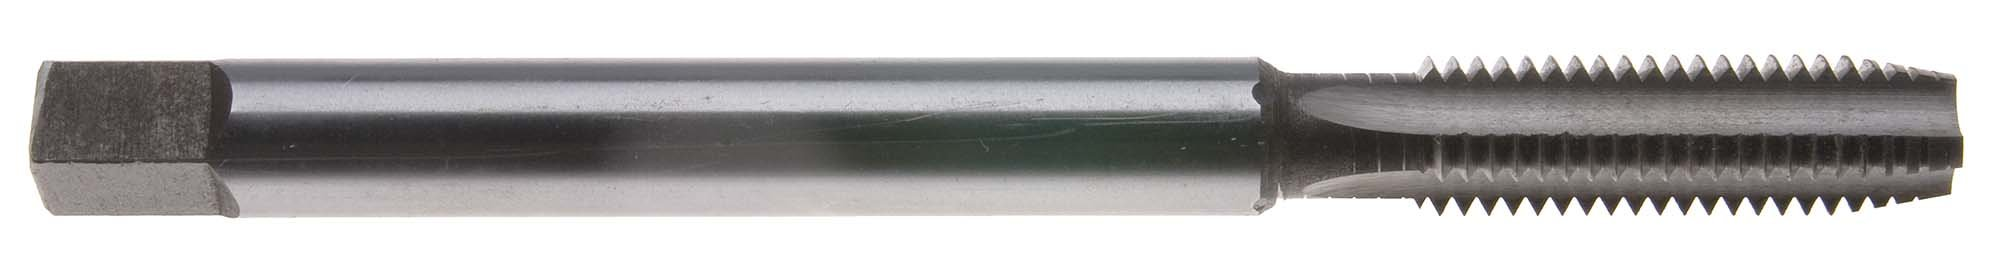 3/4-10 x 12'' Long Plug Style Pulley Tap, High Speed Steel by Taps - Long